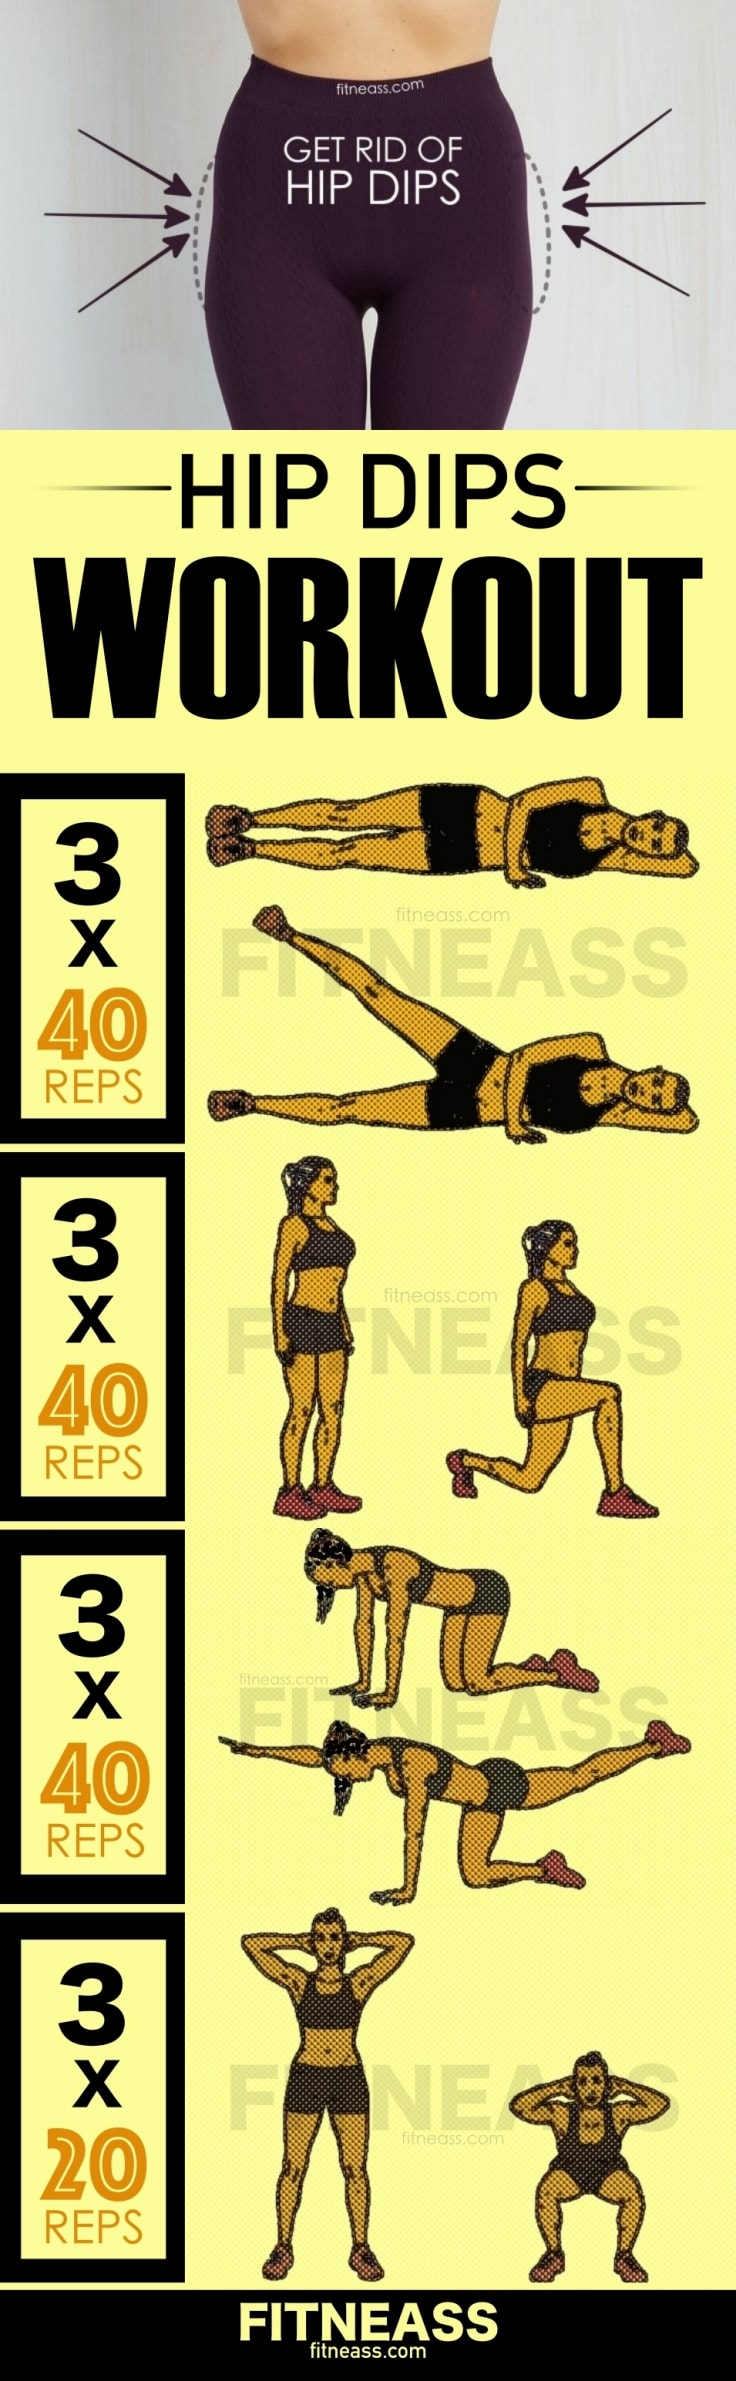 Workout To Reduce Hip Dips